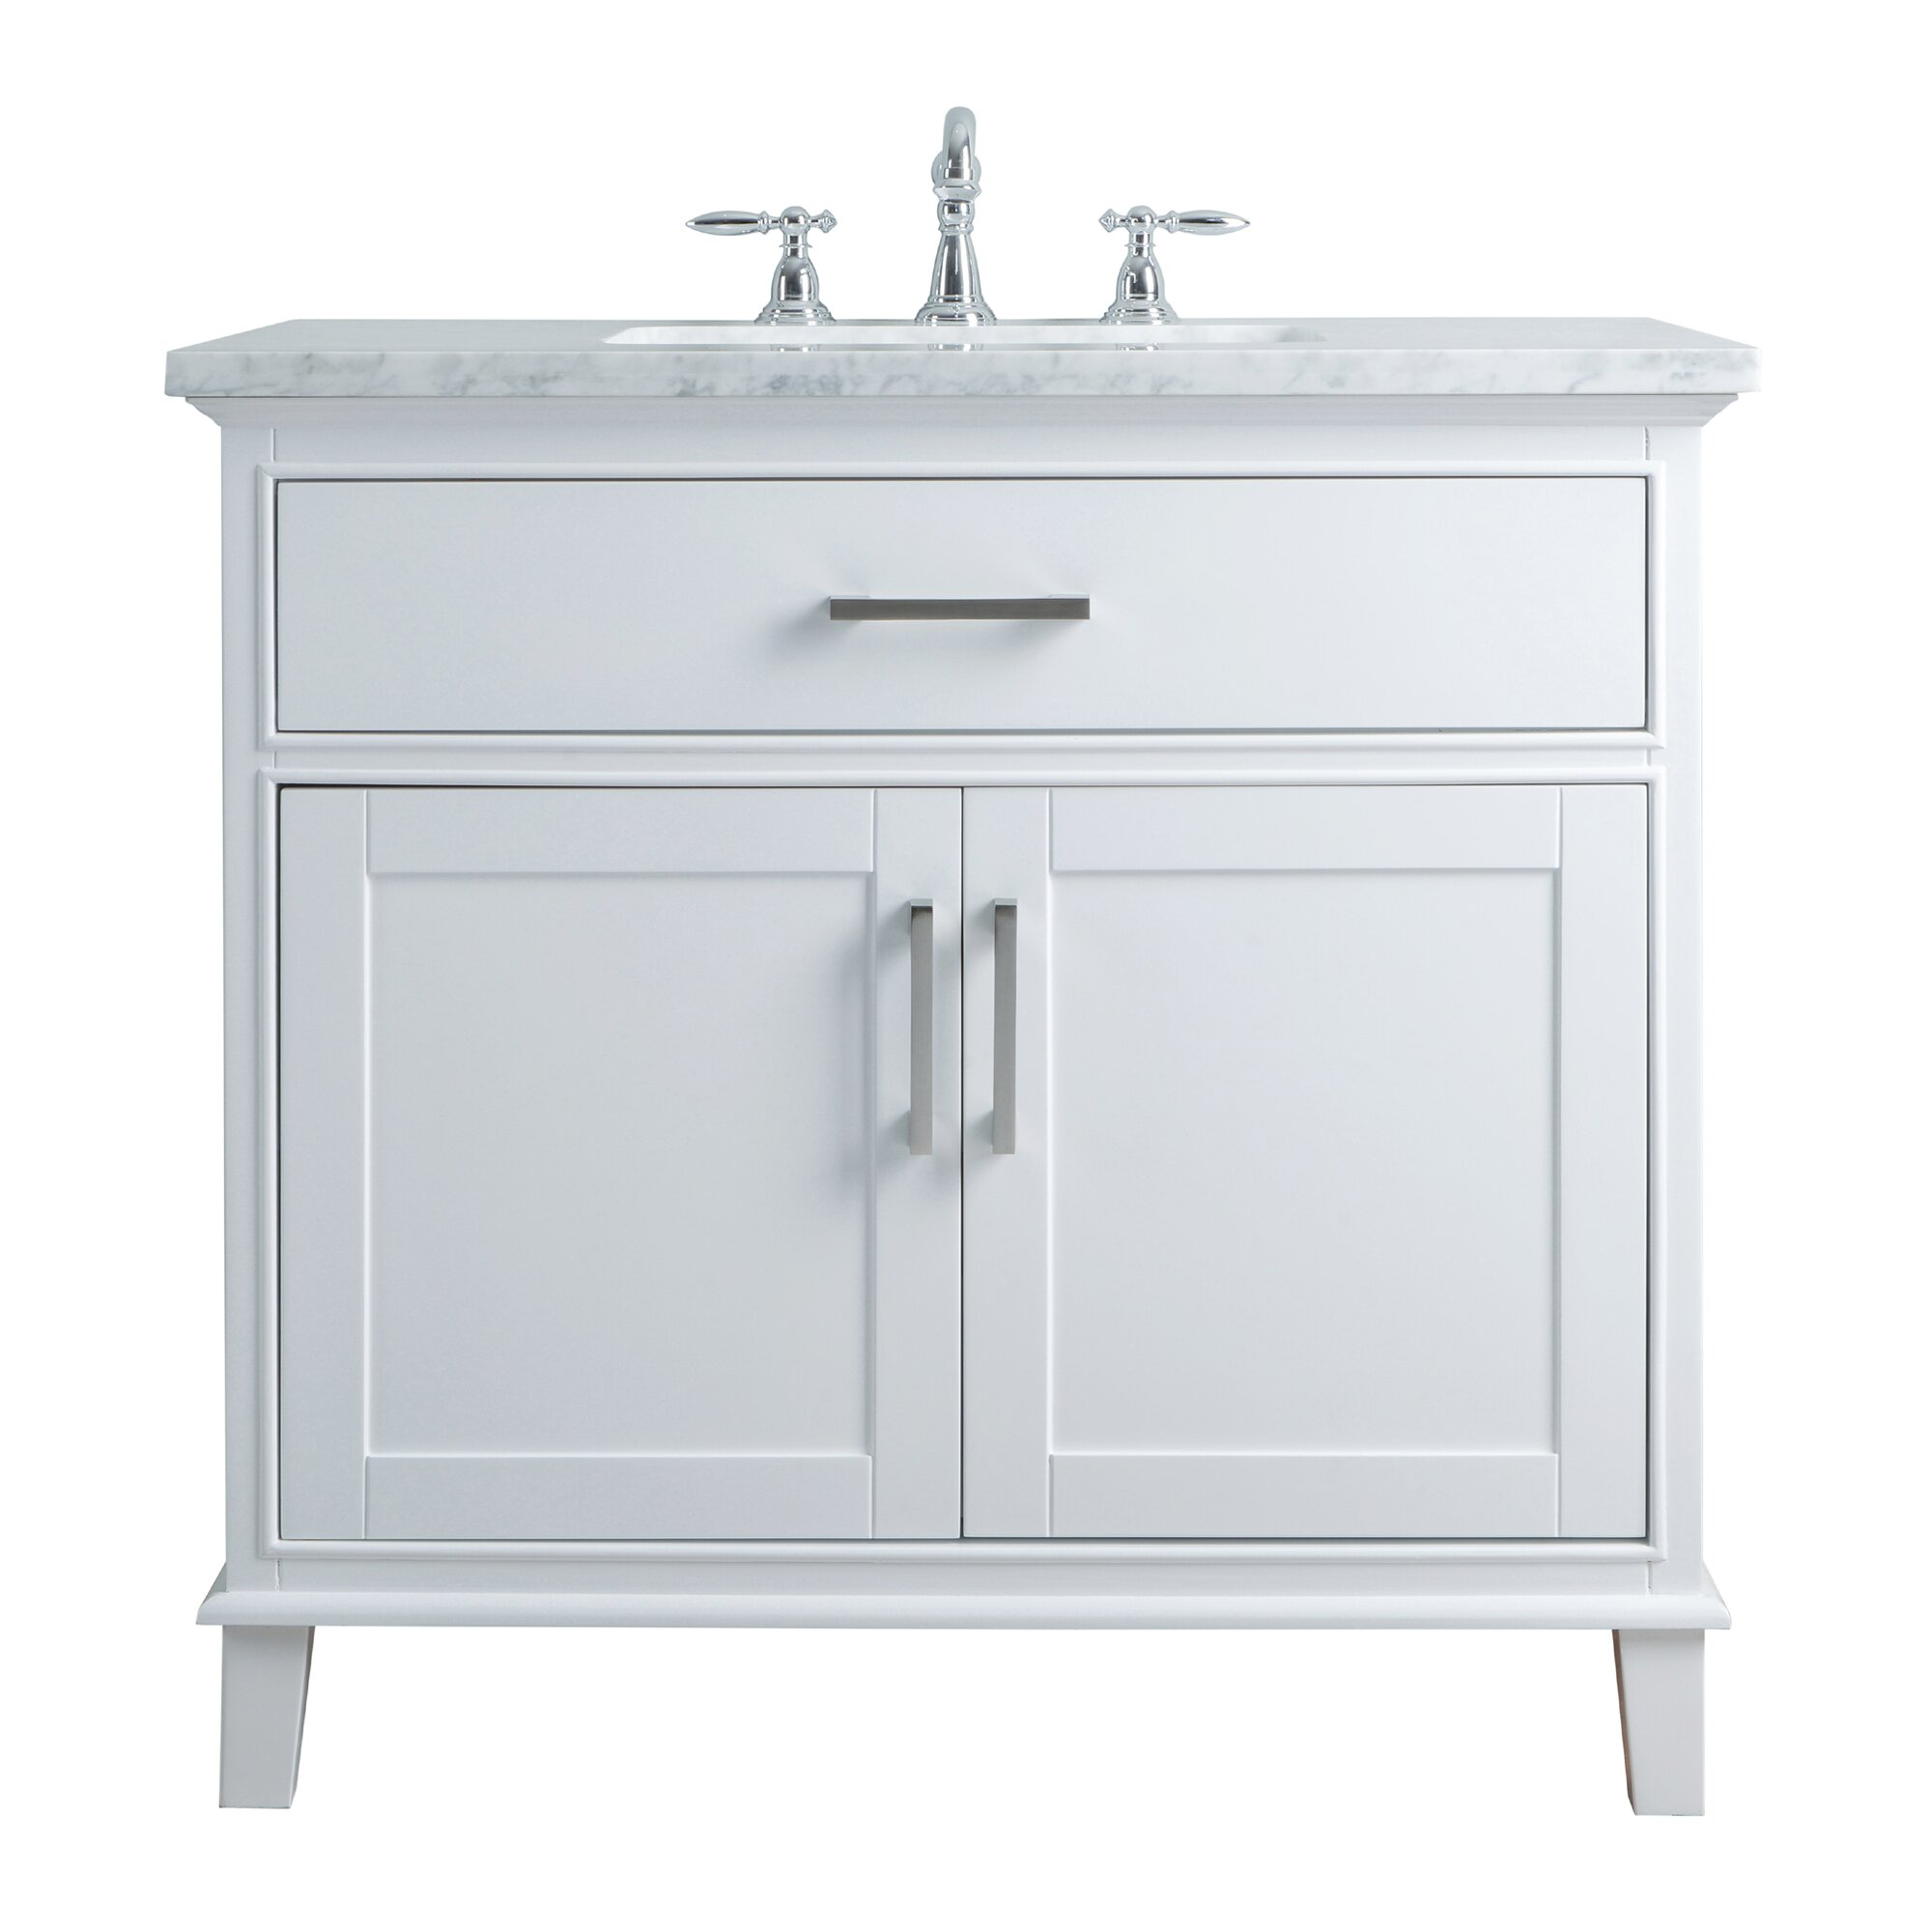 Dcor Design Leigh 36 Single Bathroom Vanity Set